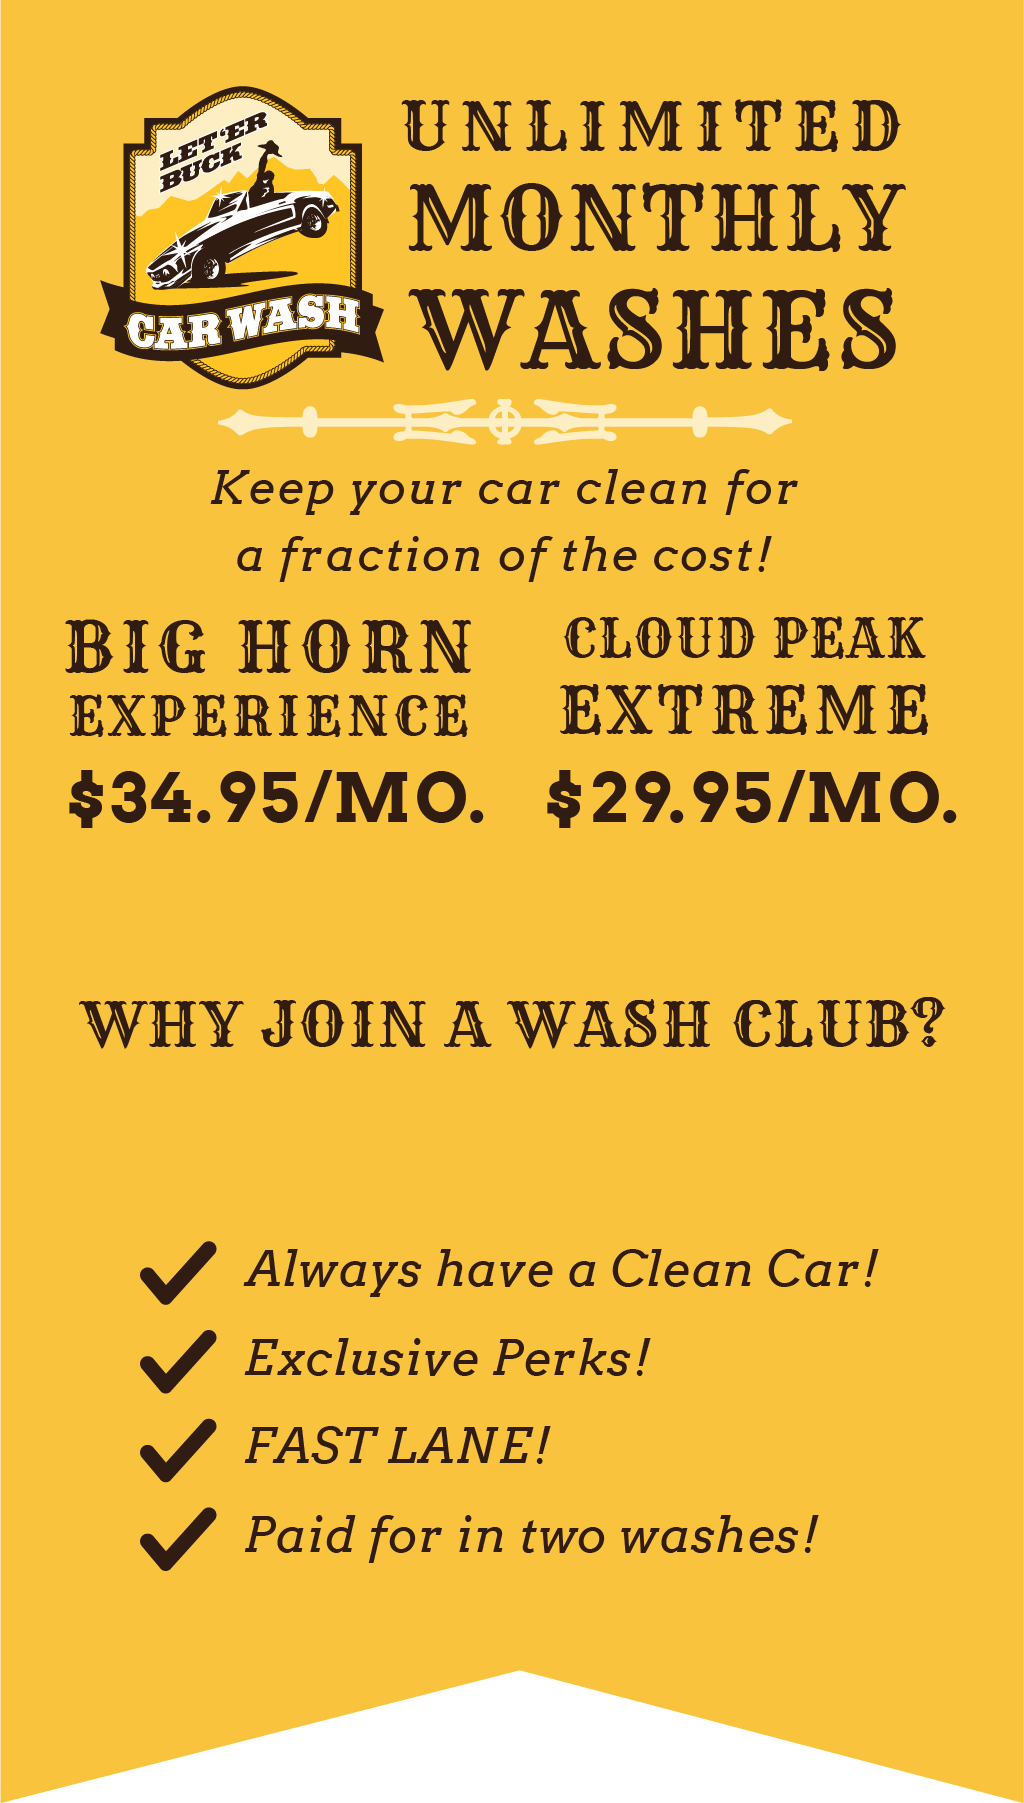 FAQ - Let'Er Buck Carwash